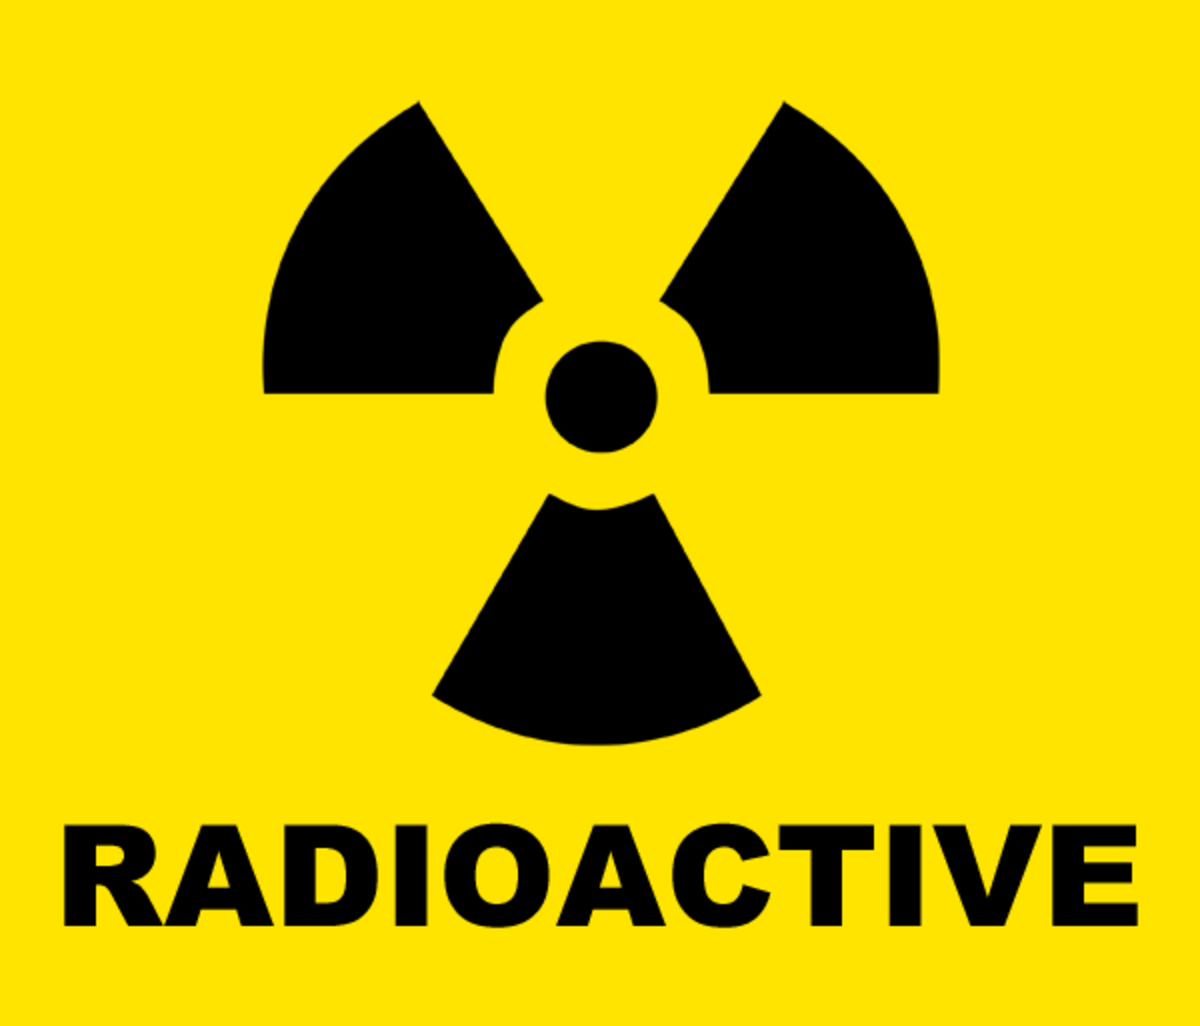 Yellow and black RADIOACTIVE symbol clip art.